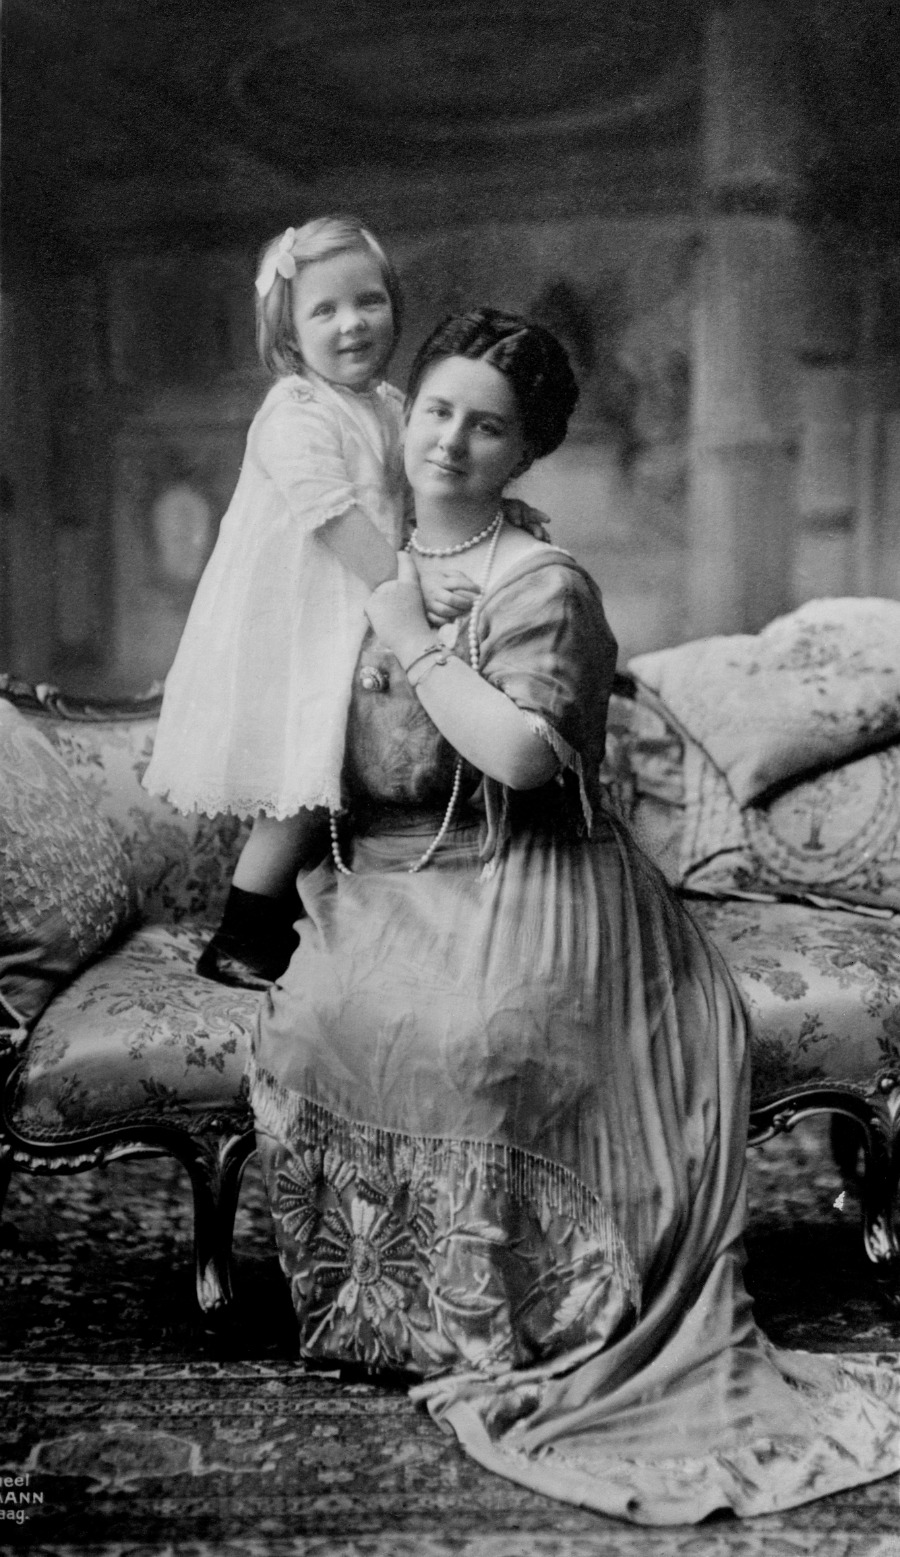 Queen Wilhelmina and her daughter Juliana, circa 1914